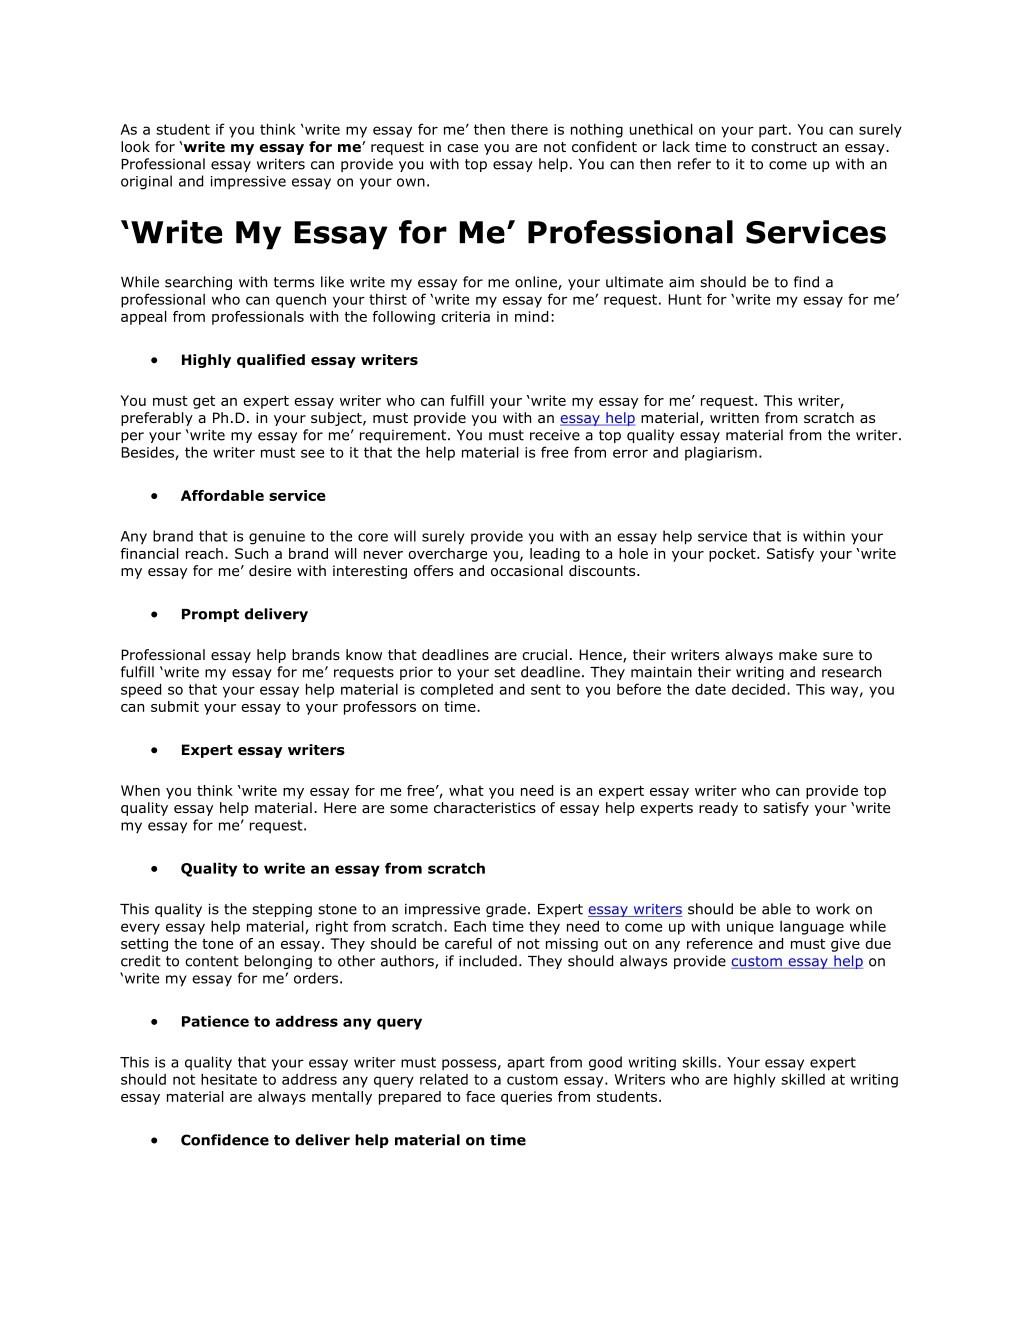 006 Essay Example Write For Me As Student If You Think My Amazing Custom Cheap Online Free Large